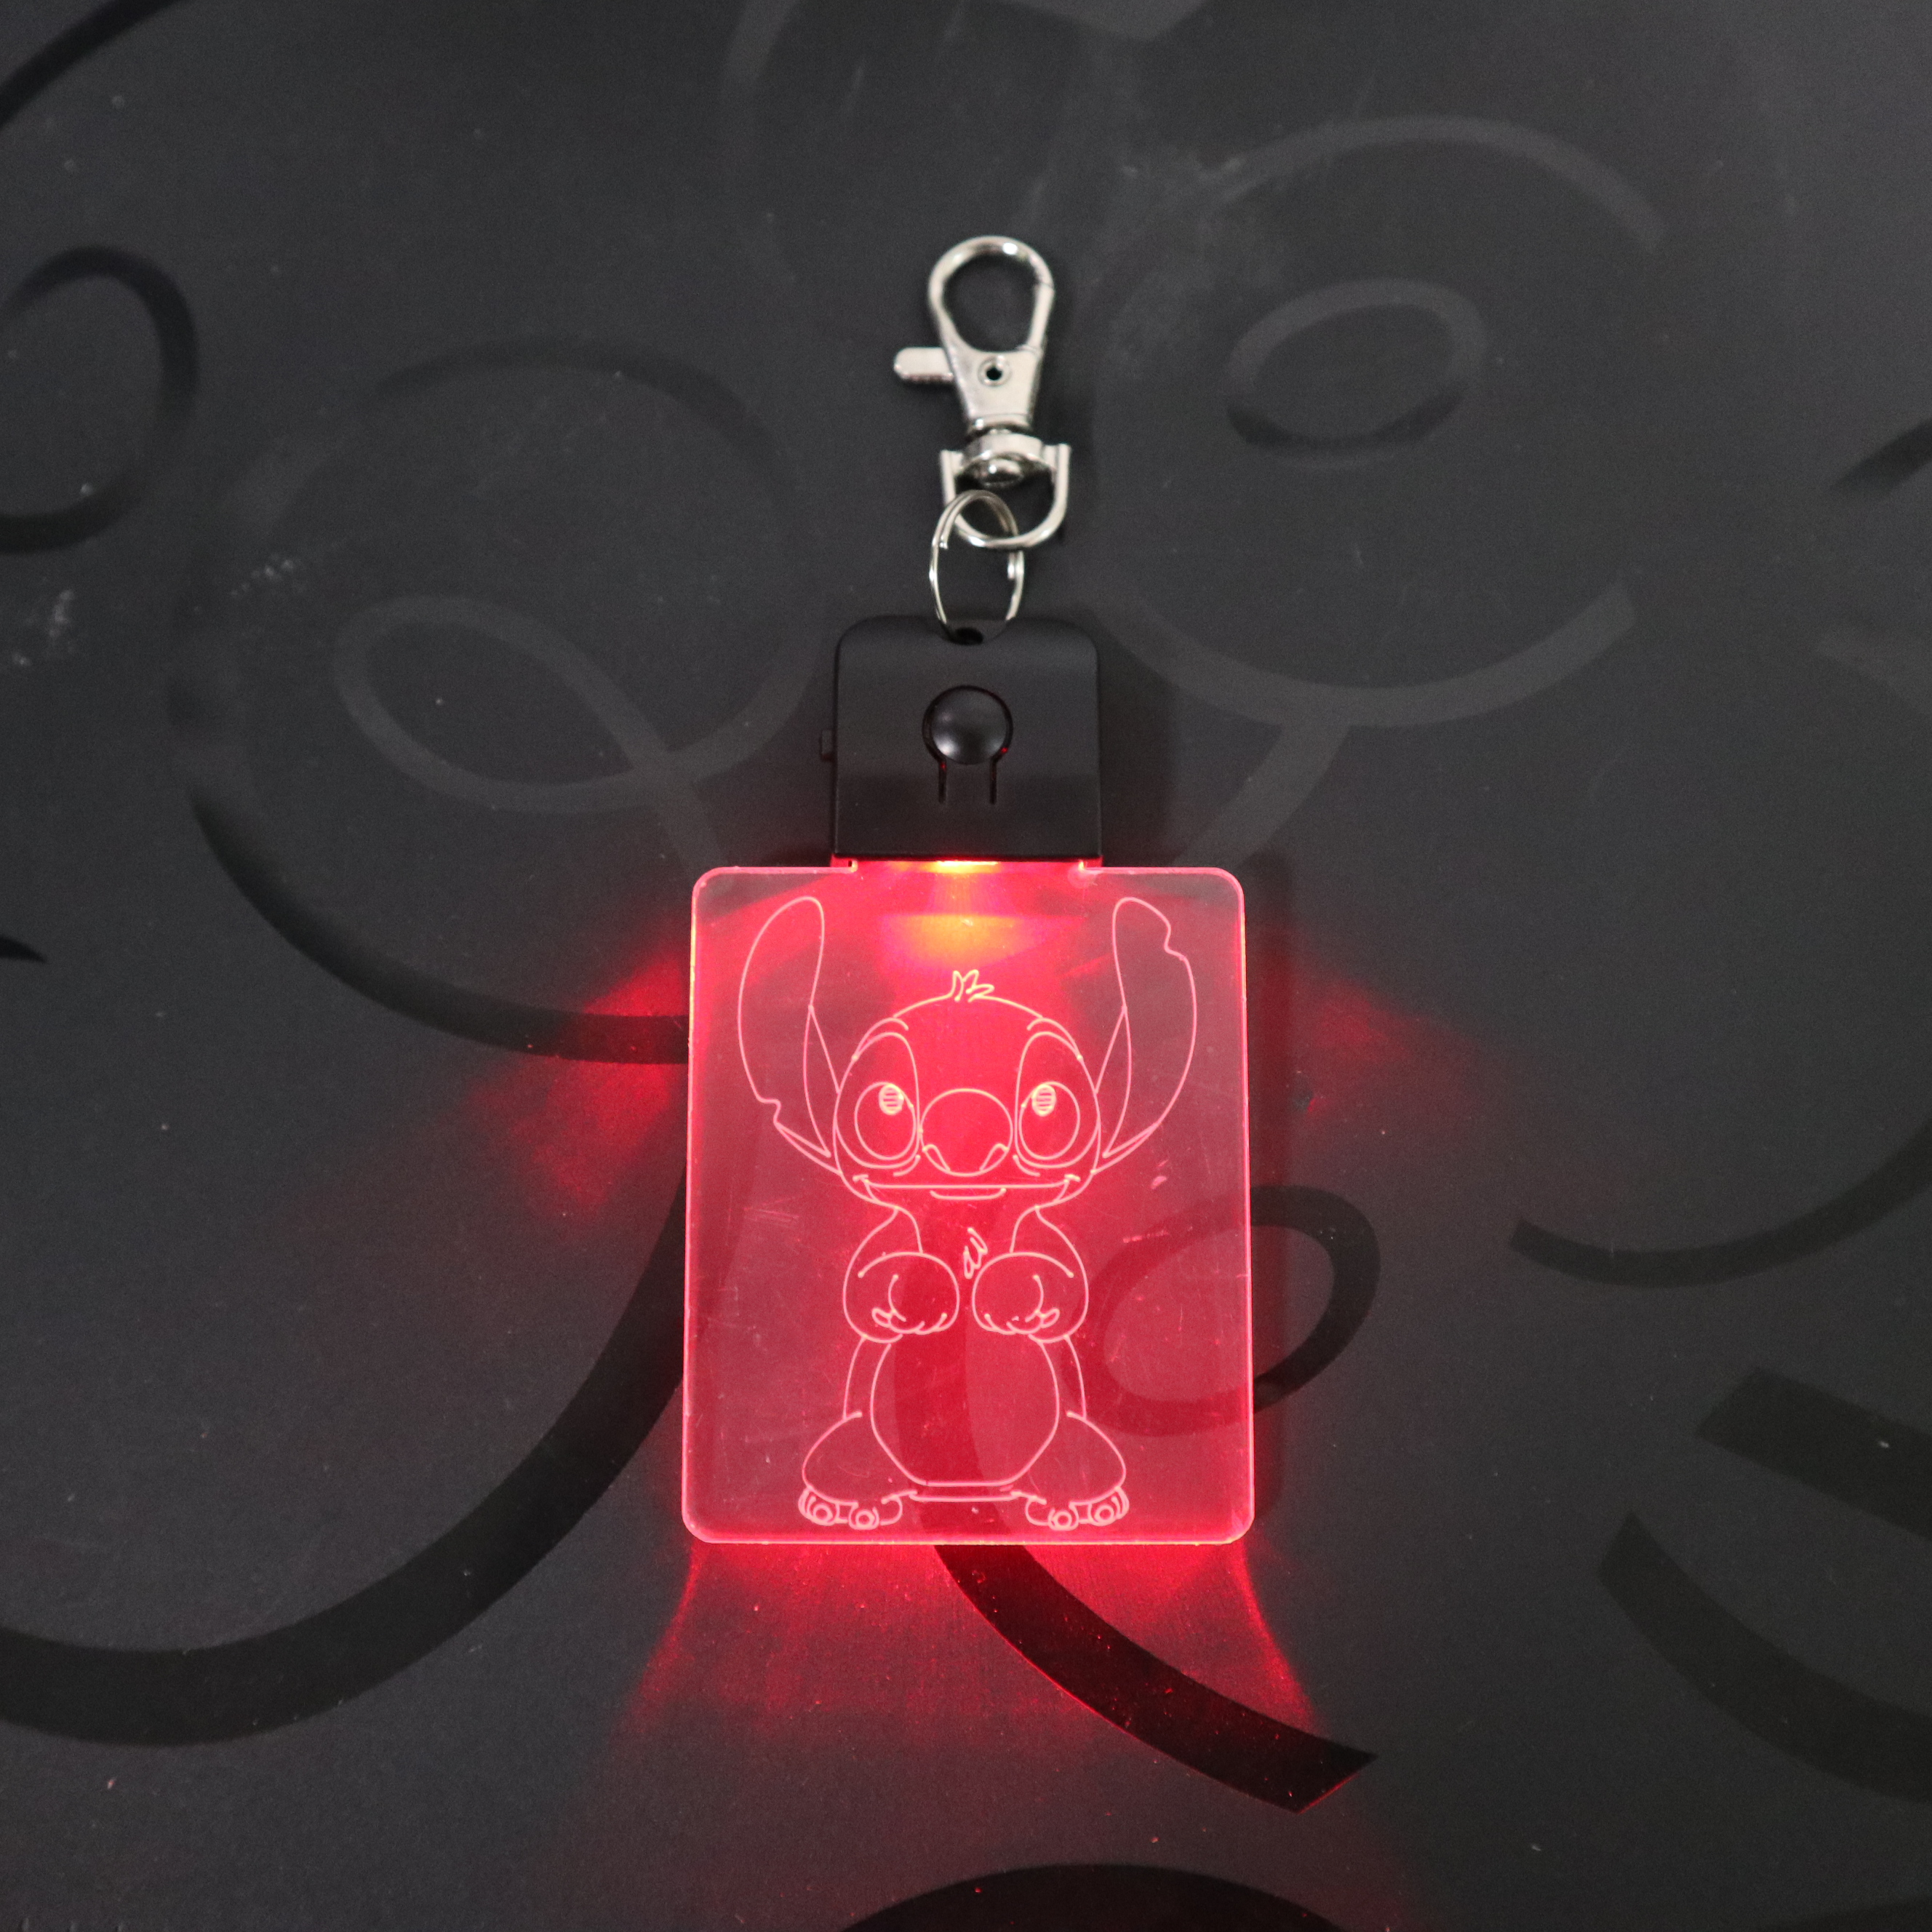 Stitch Keychain Cartoon 3D Arylic Night Light LED Magical Table Lamp Lighting Colors Decoration Back To School Children's Gift